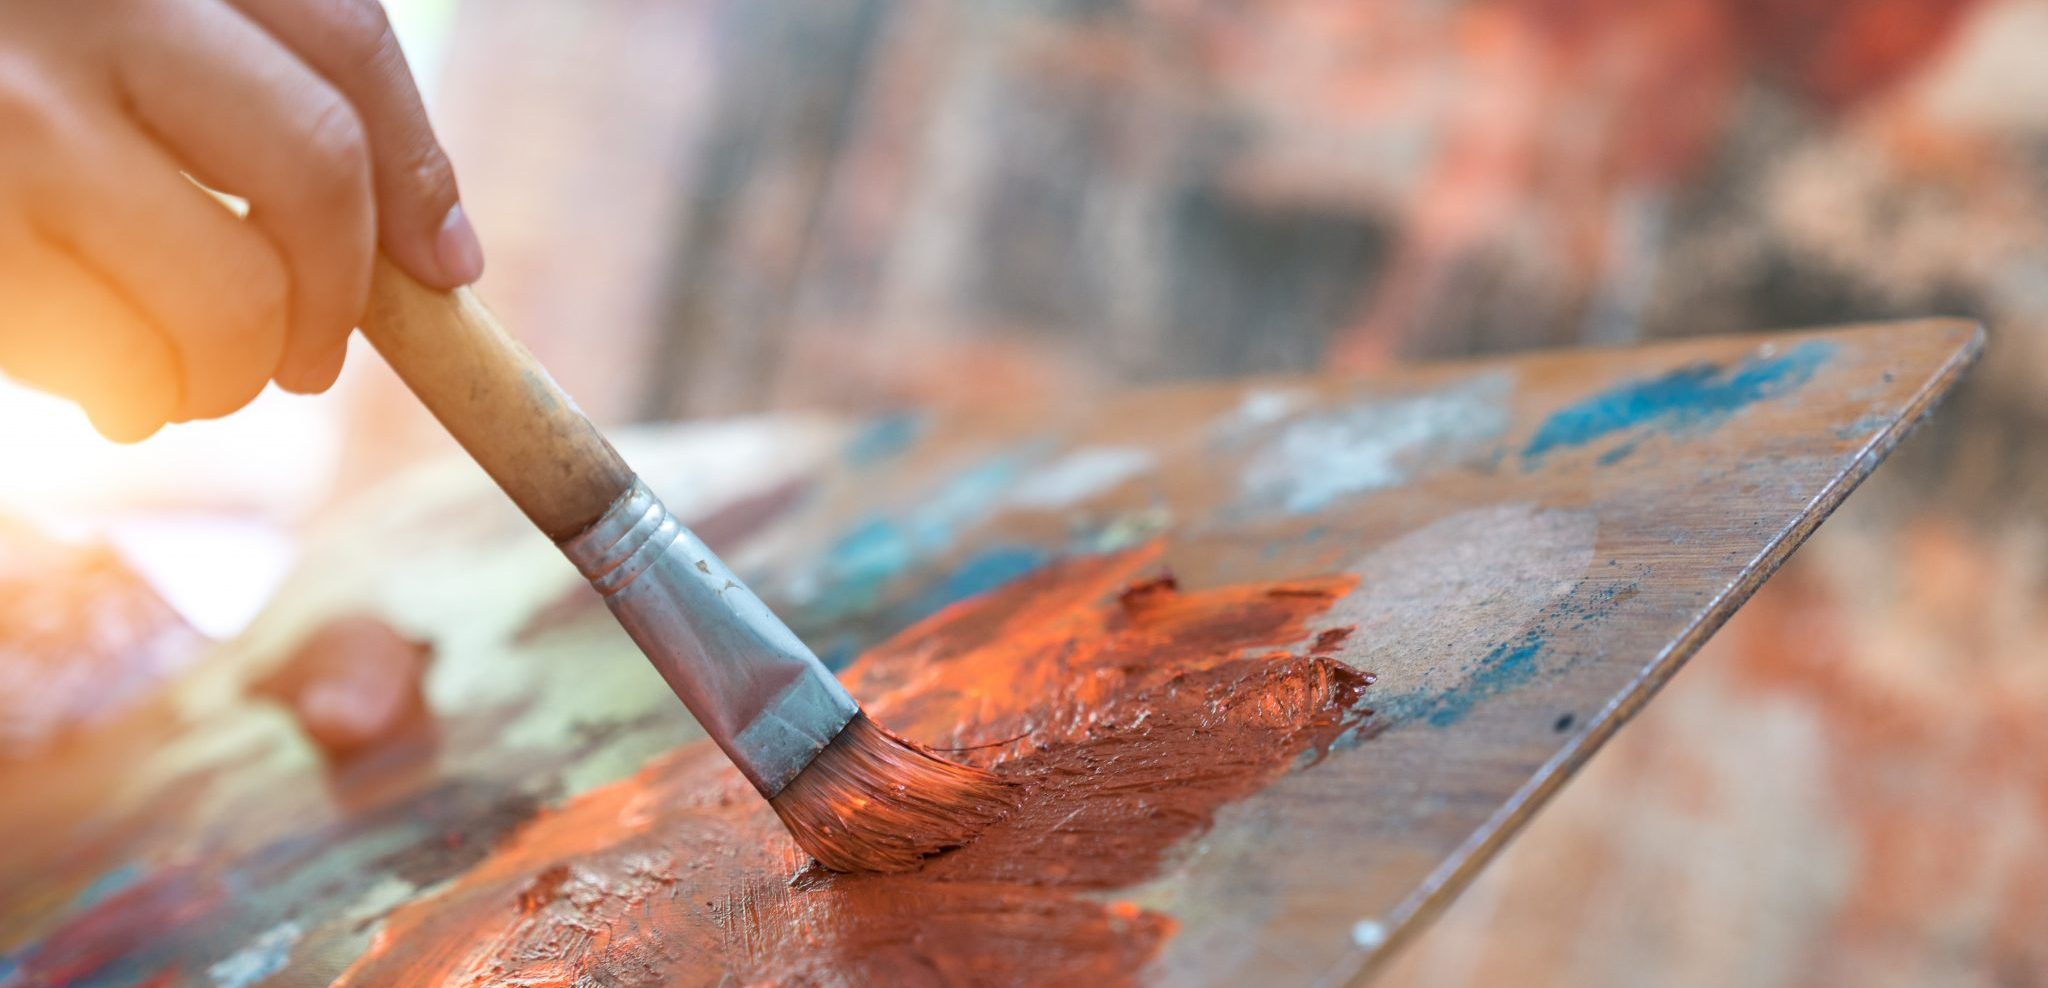 5 Tips for You to Start Improving Your Creativity Skill